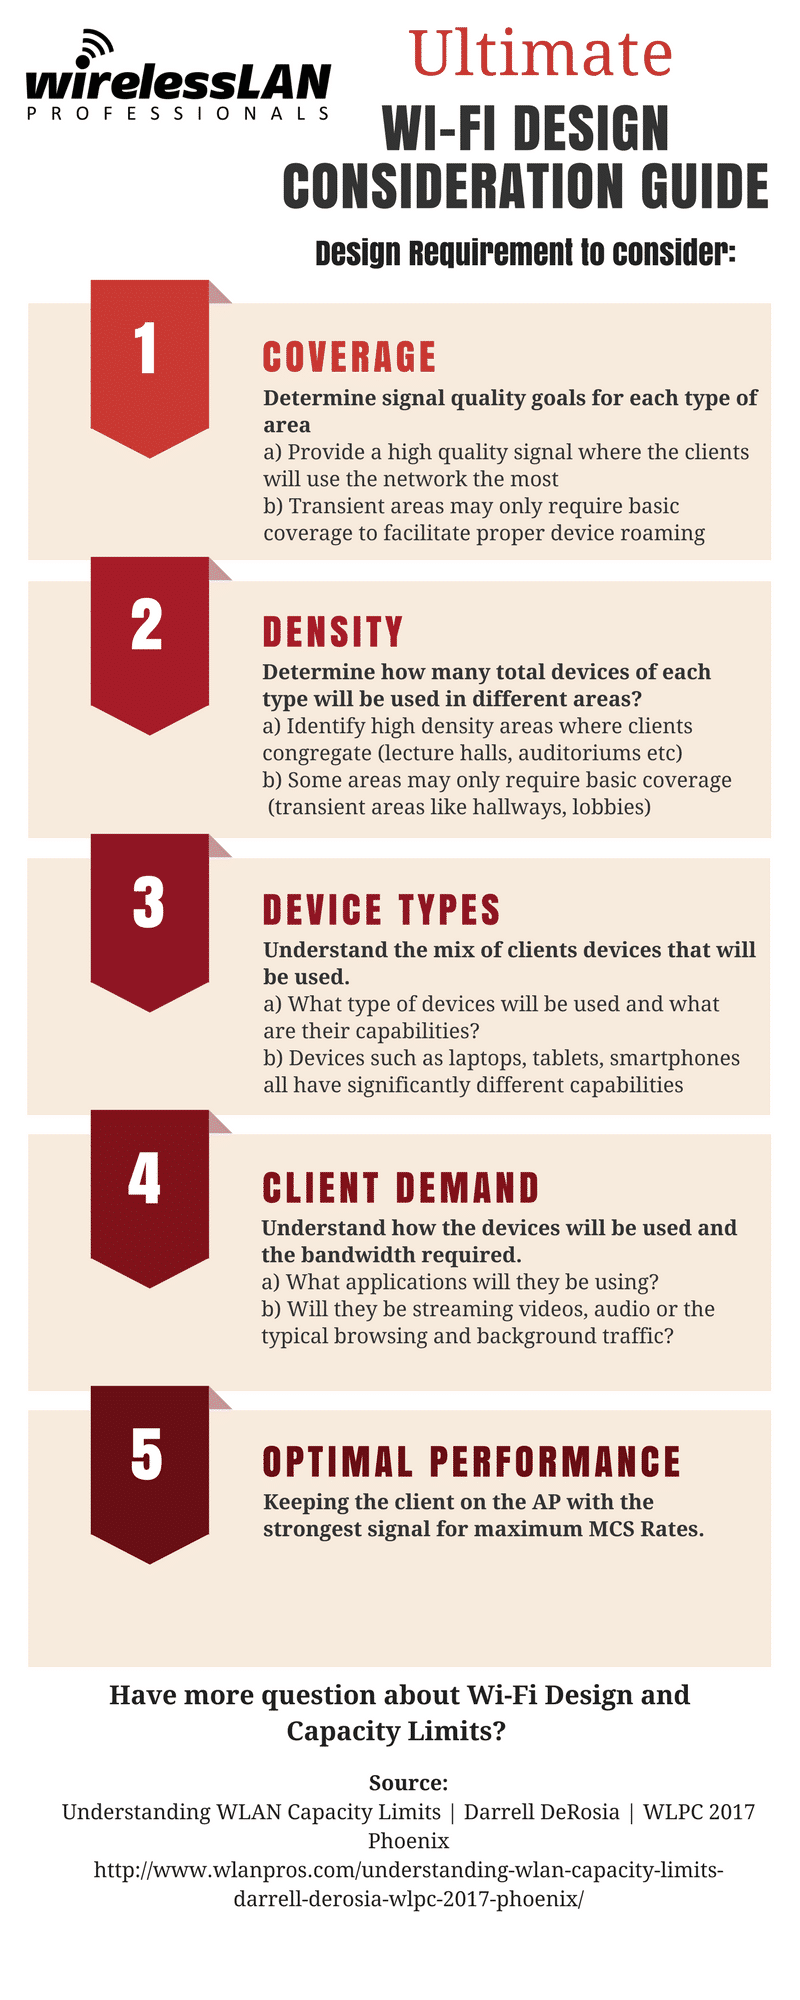 Ultimate Wi-Fi Design Consideration Guide (Infographic)